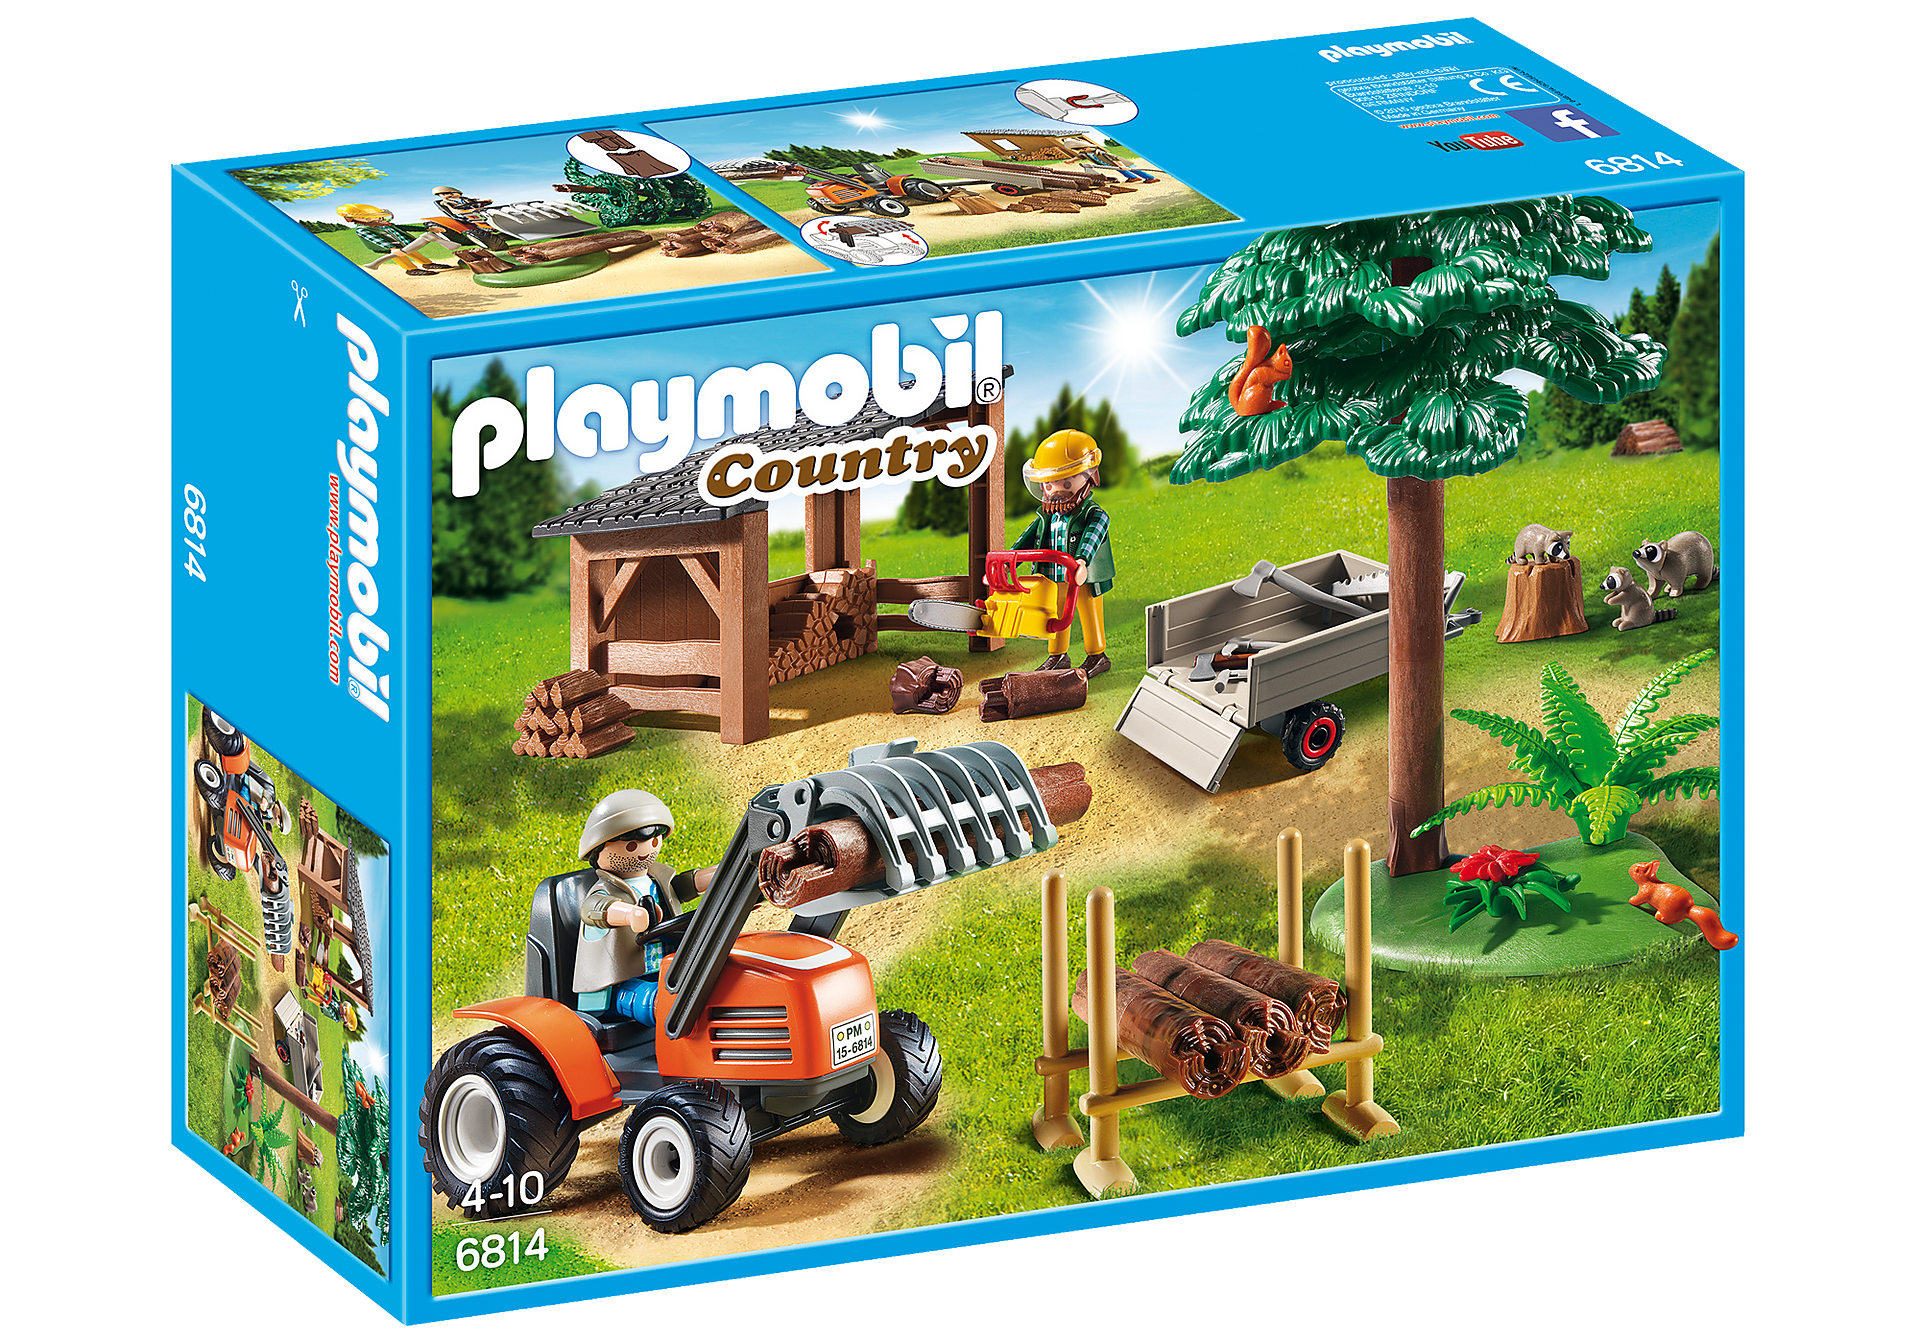 http://media.playmobil.com/i/playmobil/6814_product_box_front/Lumber Yard with Tractor